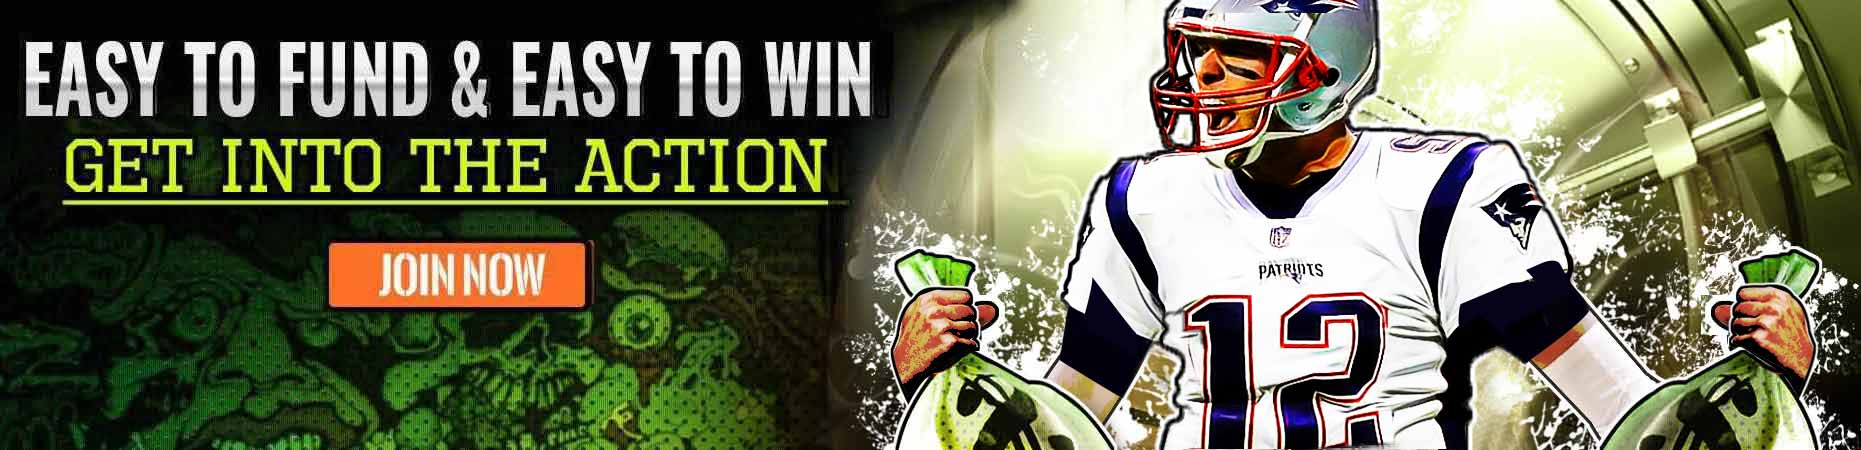 Easy to Fund & Easy to Win